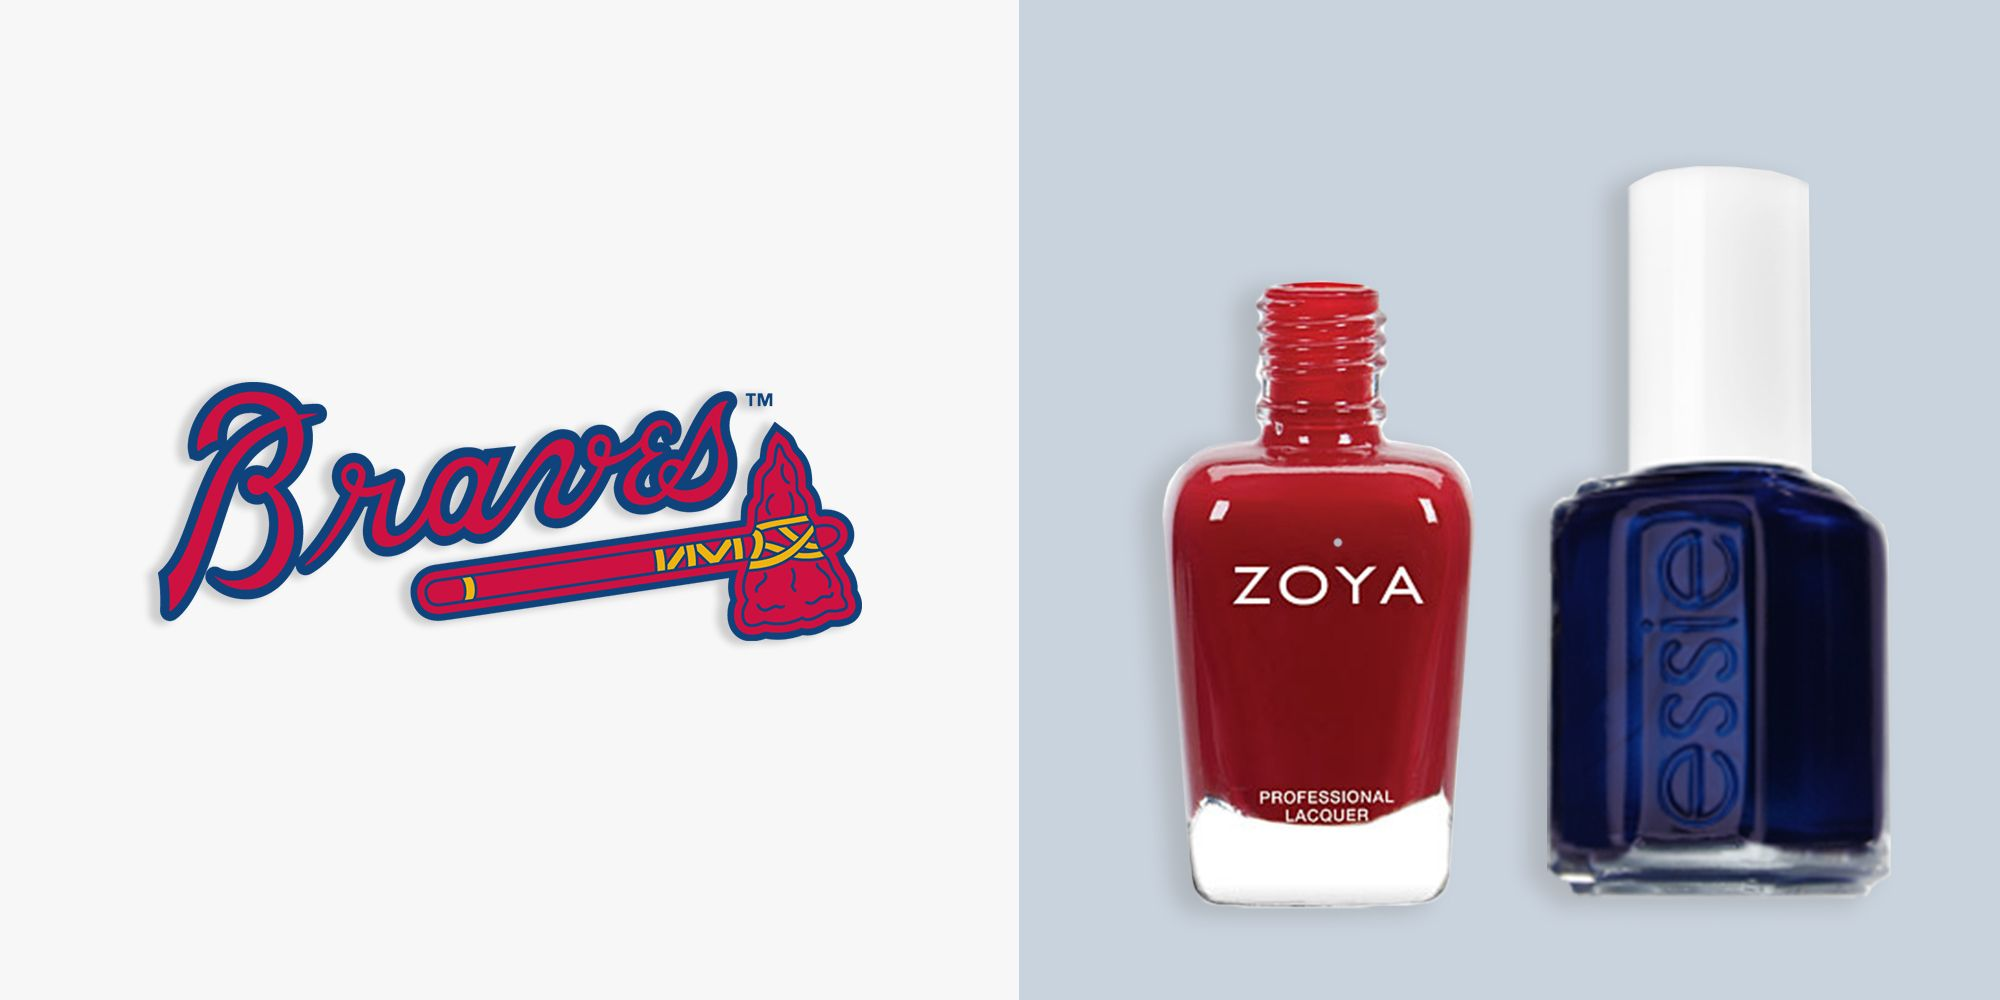 "<p><em><strong>ZOYA Nail Polish in Janel, $10, </strong></em><em><strong><a href=""http://www.zoya.com/content/item/Zoya/Zoya-Nail-Polish-in-Janel.html "" target=""_blank"">zoya.com</a>; <em><strong>Essie Nail Polish in Midnight Cami, $9, <a href=""http://www.essie.com/Colors/blues/midnight-cami.aspx"" target=""_blank"">essie.com</a></strong></em></strong></em><a href=""http://www.zoya.com/content/item/Zoya/Zoya-Nail-Polish-in-Janel.html "" target=""_blank""></a></p><p> With two bold shades to play with, there's almost no excuse to come to a Braves game barehanded. Navy and red polka dots would look awesome sprinkled over nude nails, but we're also in favor of block tips over white beds.</p><p><strong>More:</strong> <a href=""http://www.bestproducts.com/beauty/g431/football-nail-color-pairs/?"" target=""_blank"">The Best NFL-Inspired Looks to Prep for Next Season</a></p>"